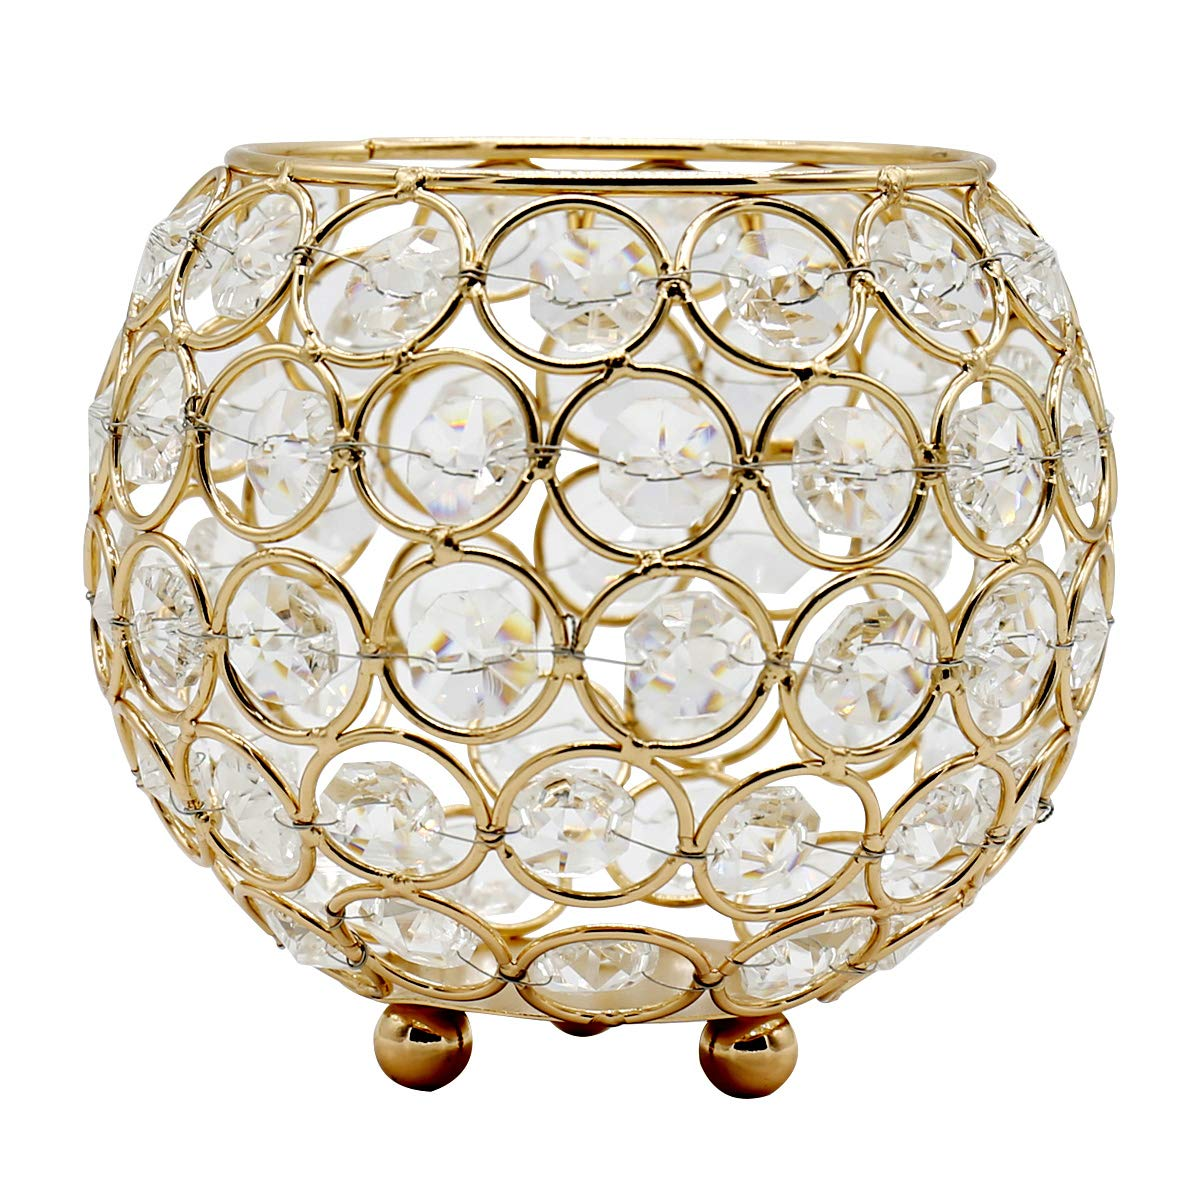 Joynest Crystal Tea Light Candle Lantern Holders, Wedding Coffee Table Decorative Centerpieces for Home Décor Party Mothers Day Birthday House Gifts (4.8'', Gold)